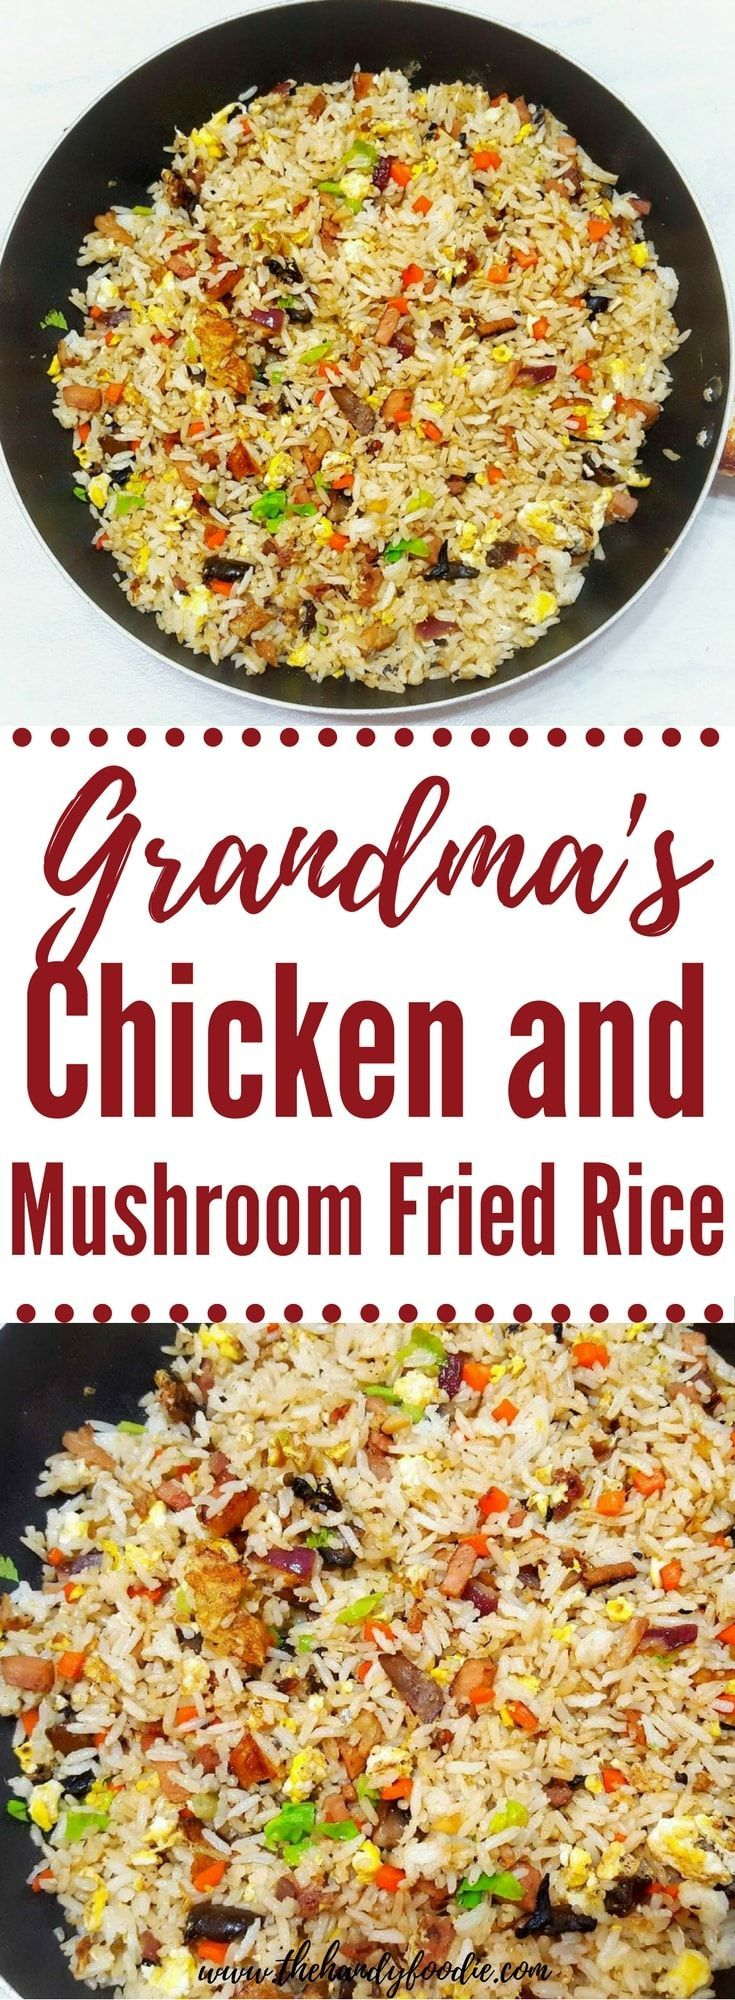 grandma's chicken and mushroom fried rice. chicken fried rice l mushroom fried rice l rice recipes l easy rice recipes l mixed vegetables l yummy recipes l cooked rice l yummy food l crockpot recipes